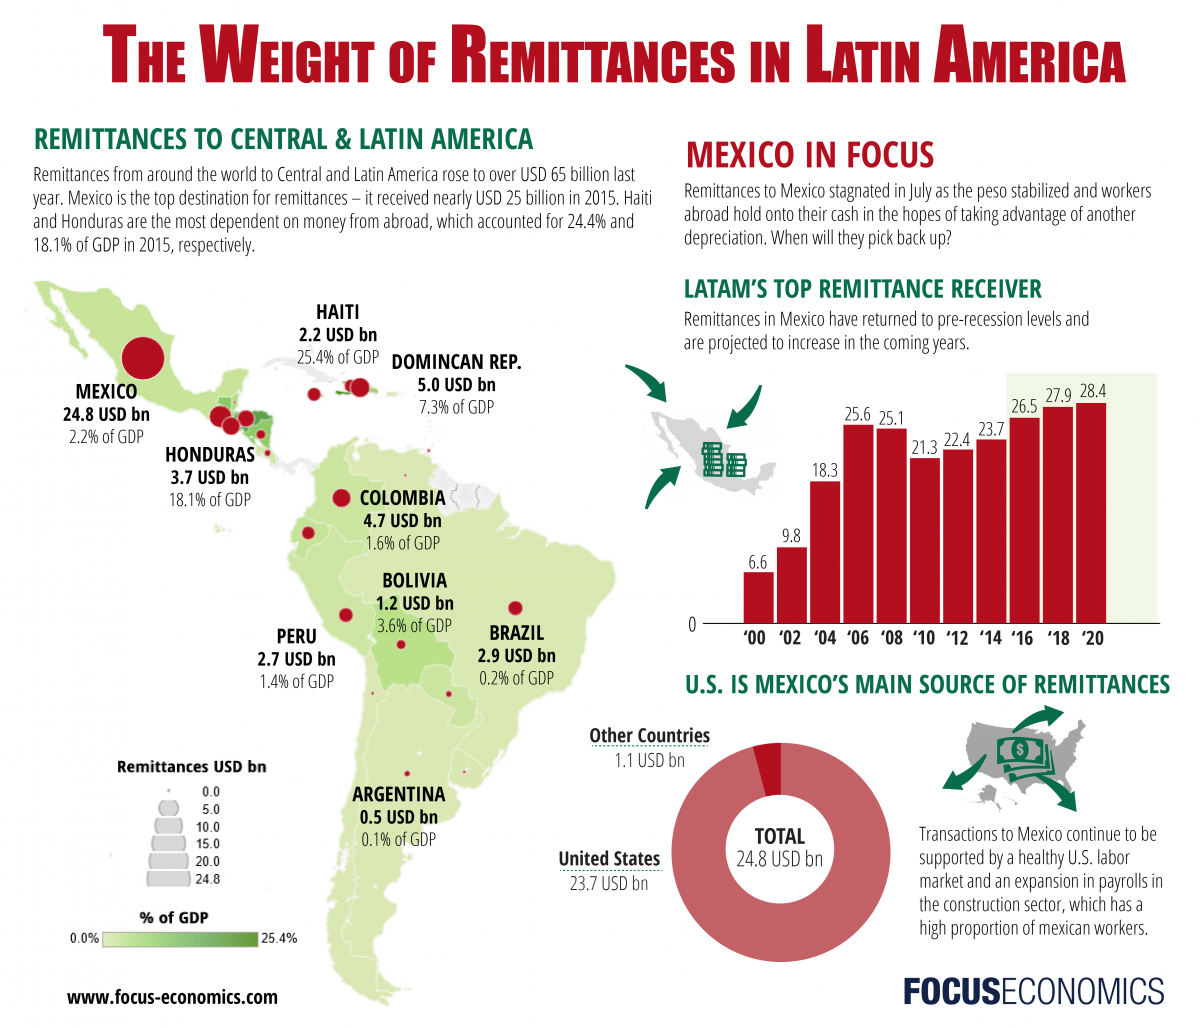 focuseconomics_latinamerica_remittances.png